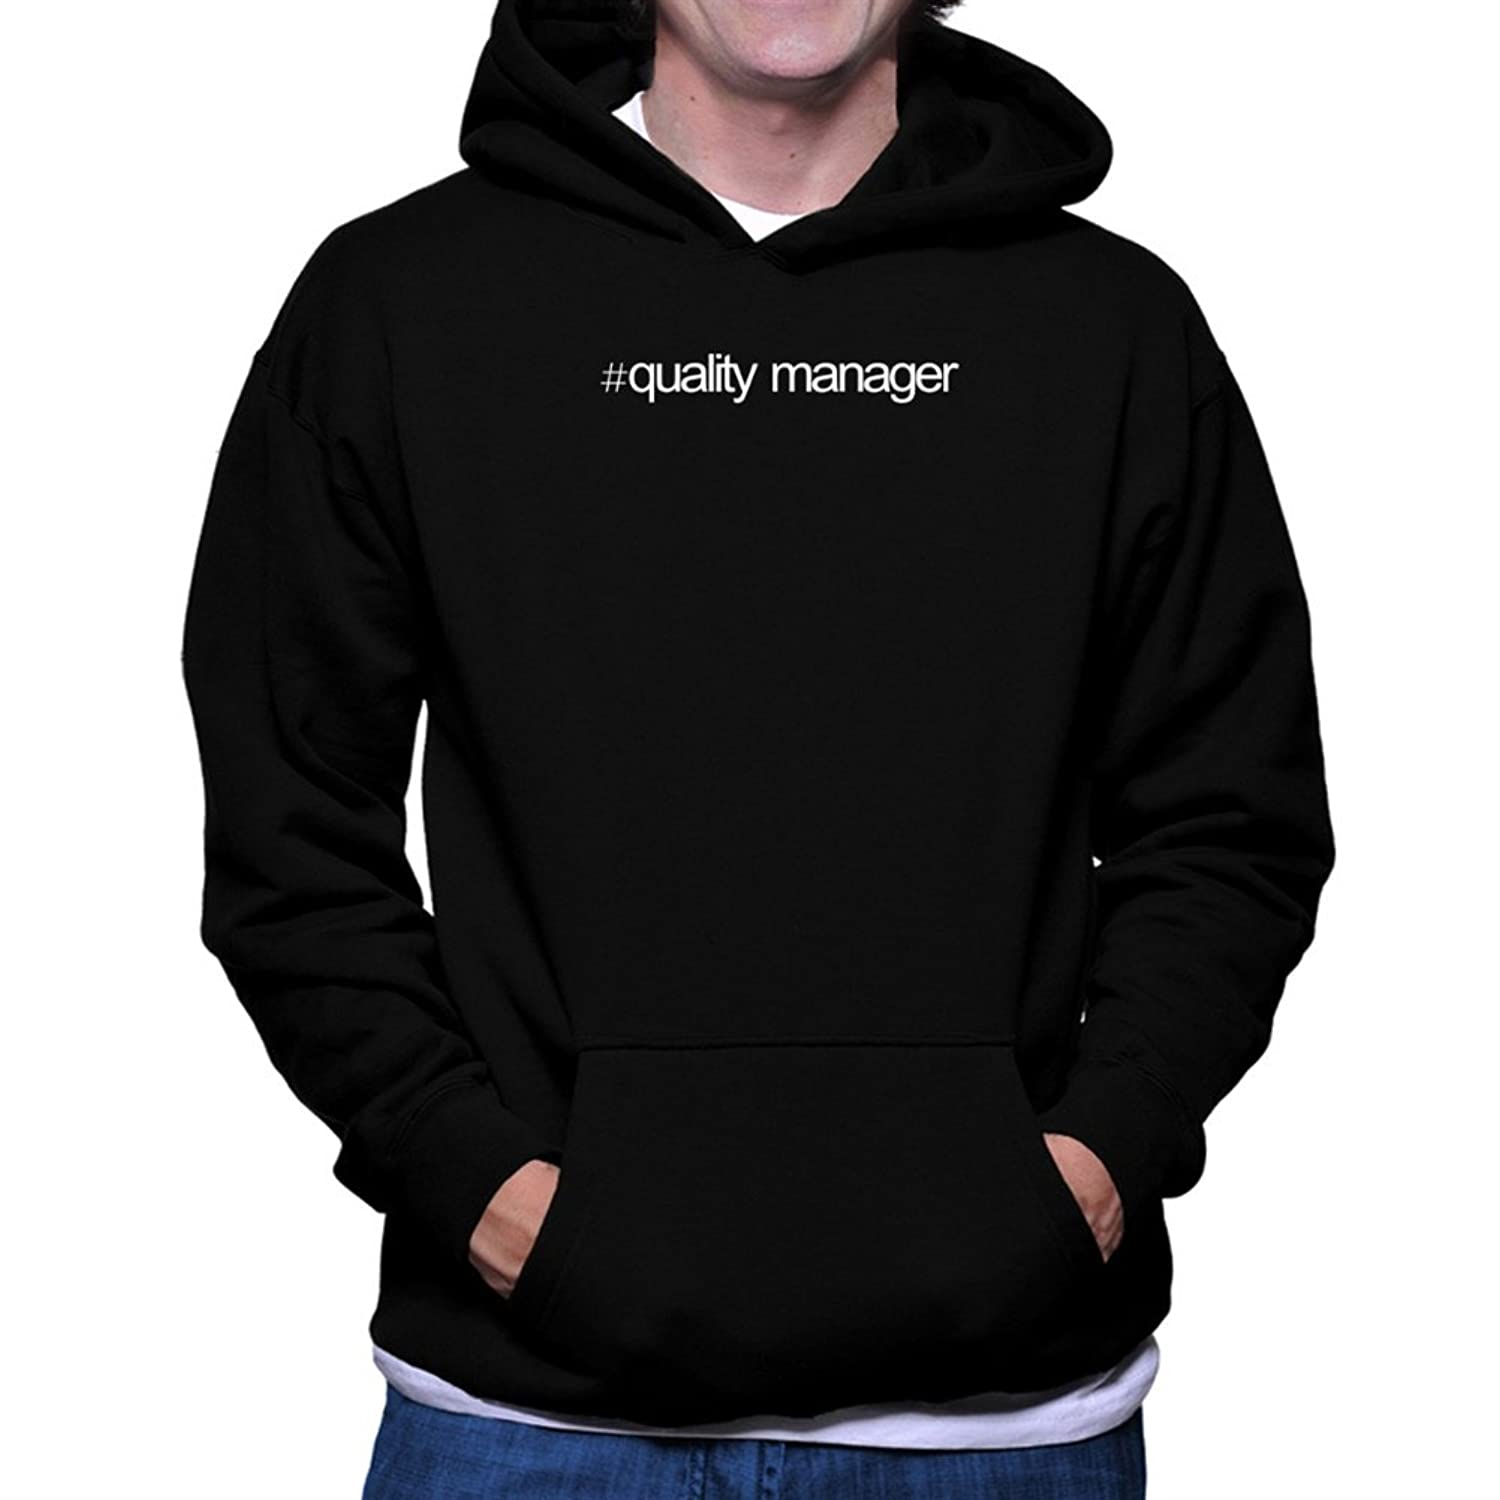 Hashtag Quality Manager Hoodie